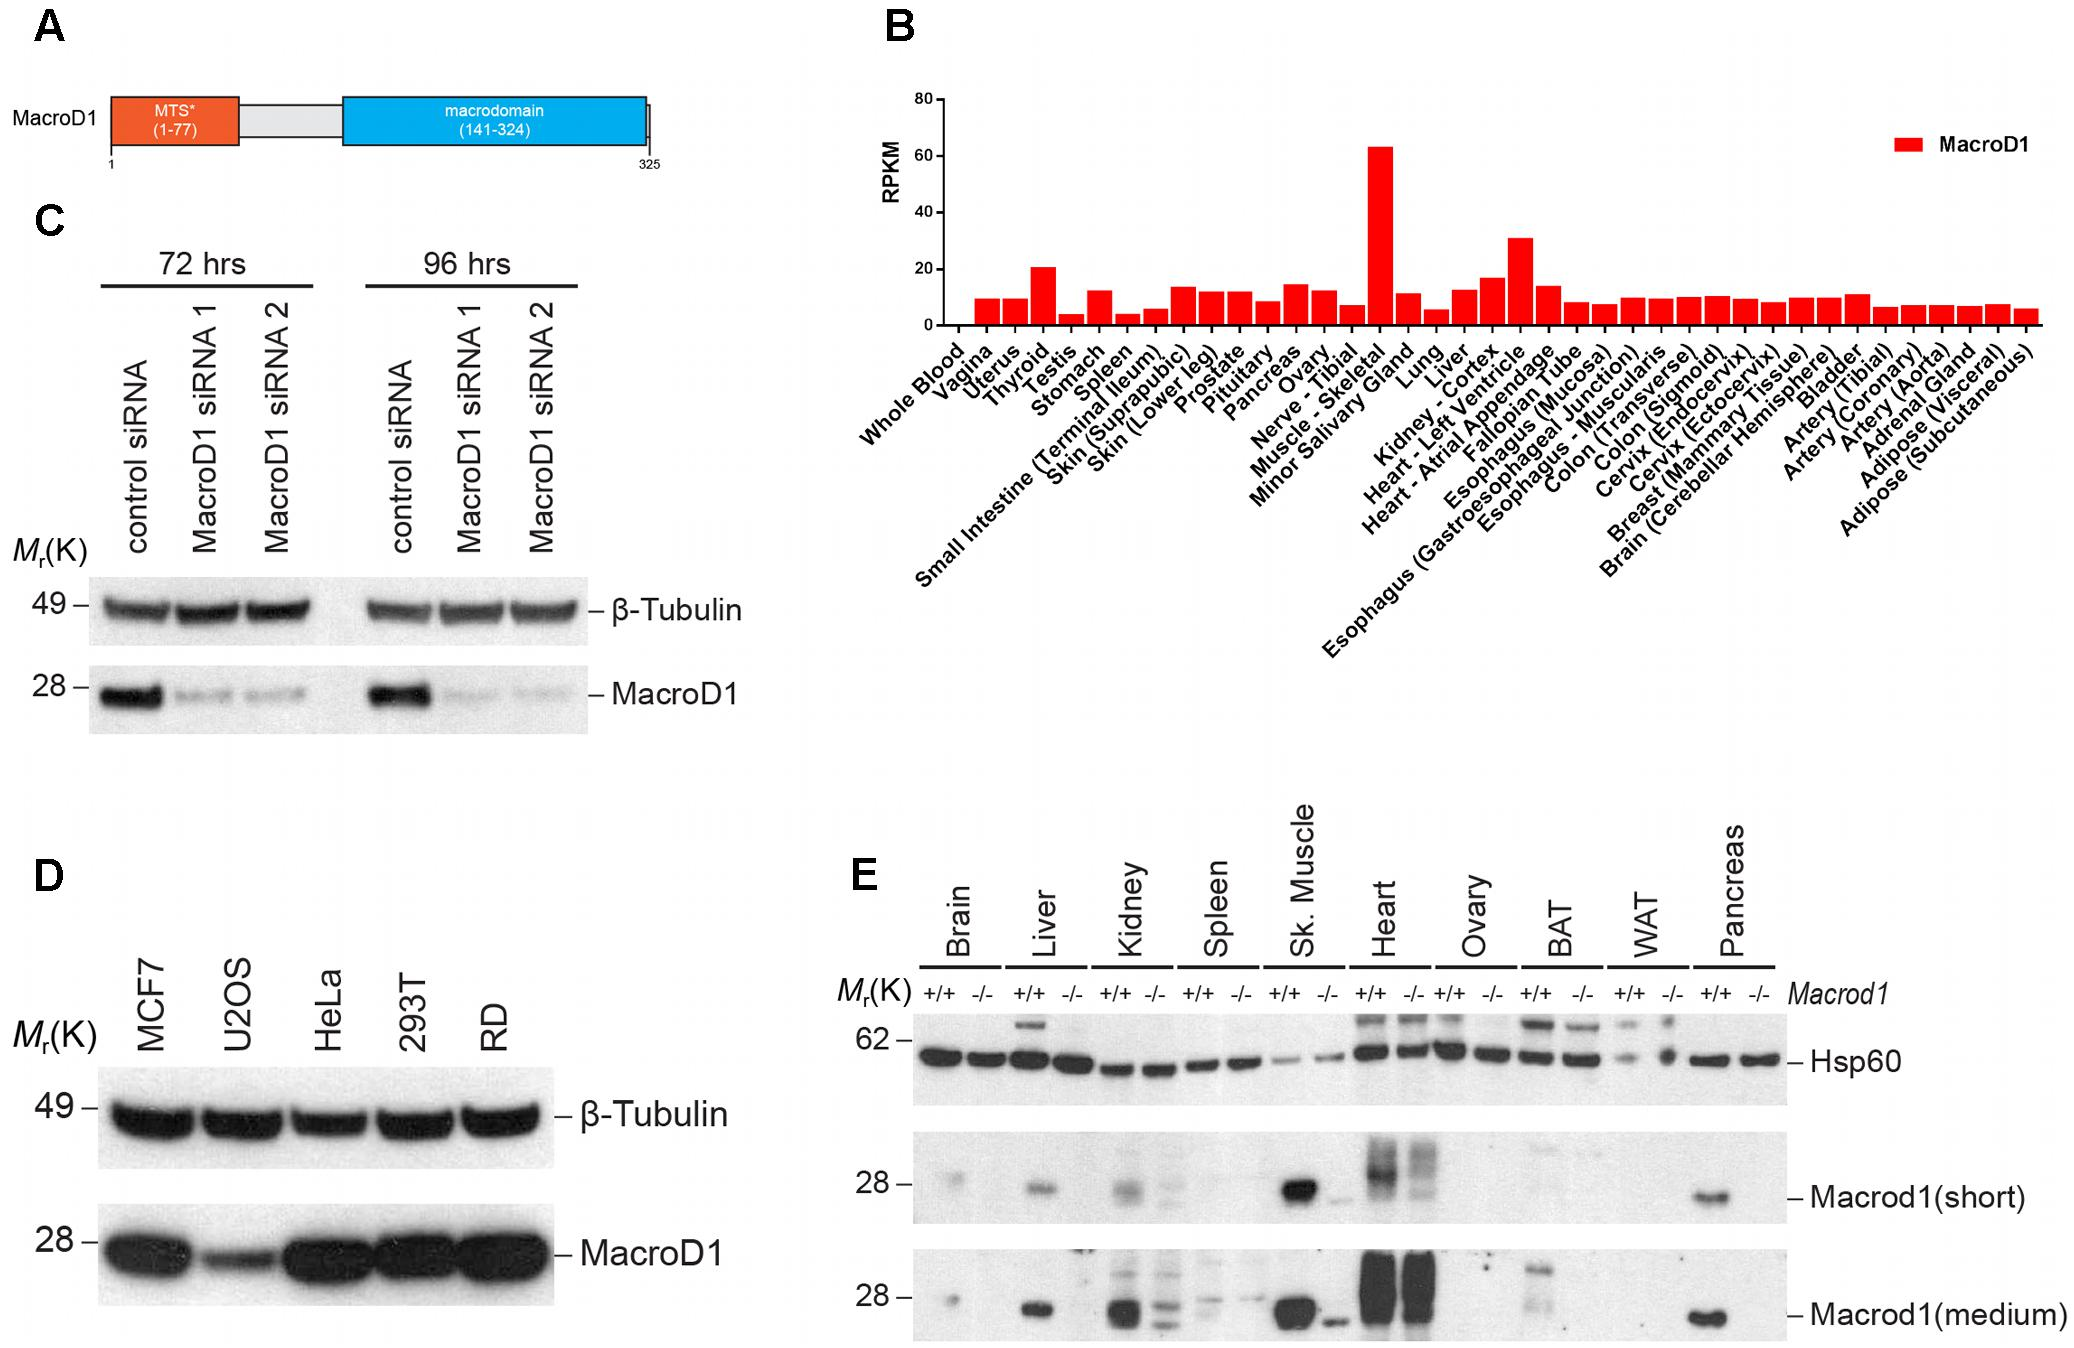 Frontiers | MacroD1 Is a Promiscuous ADP-Ribosyl Hydrolase